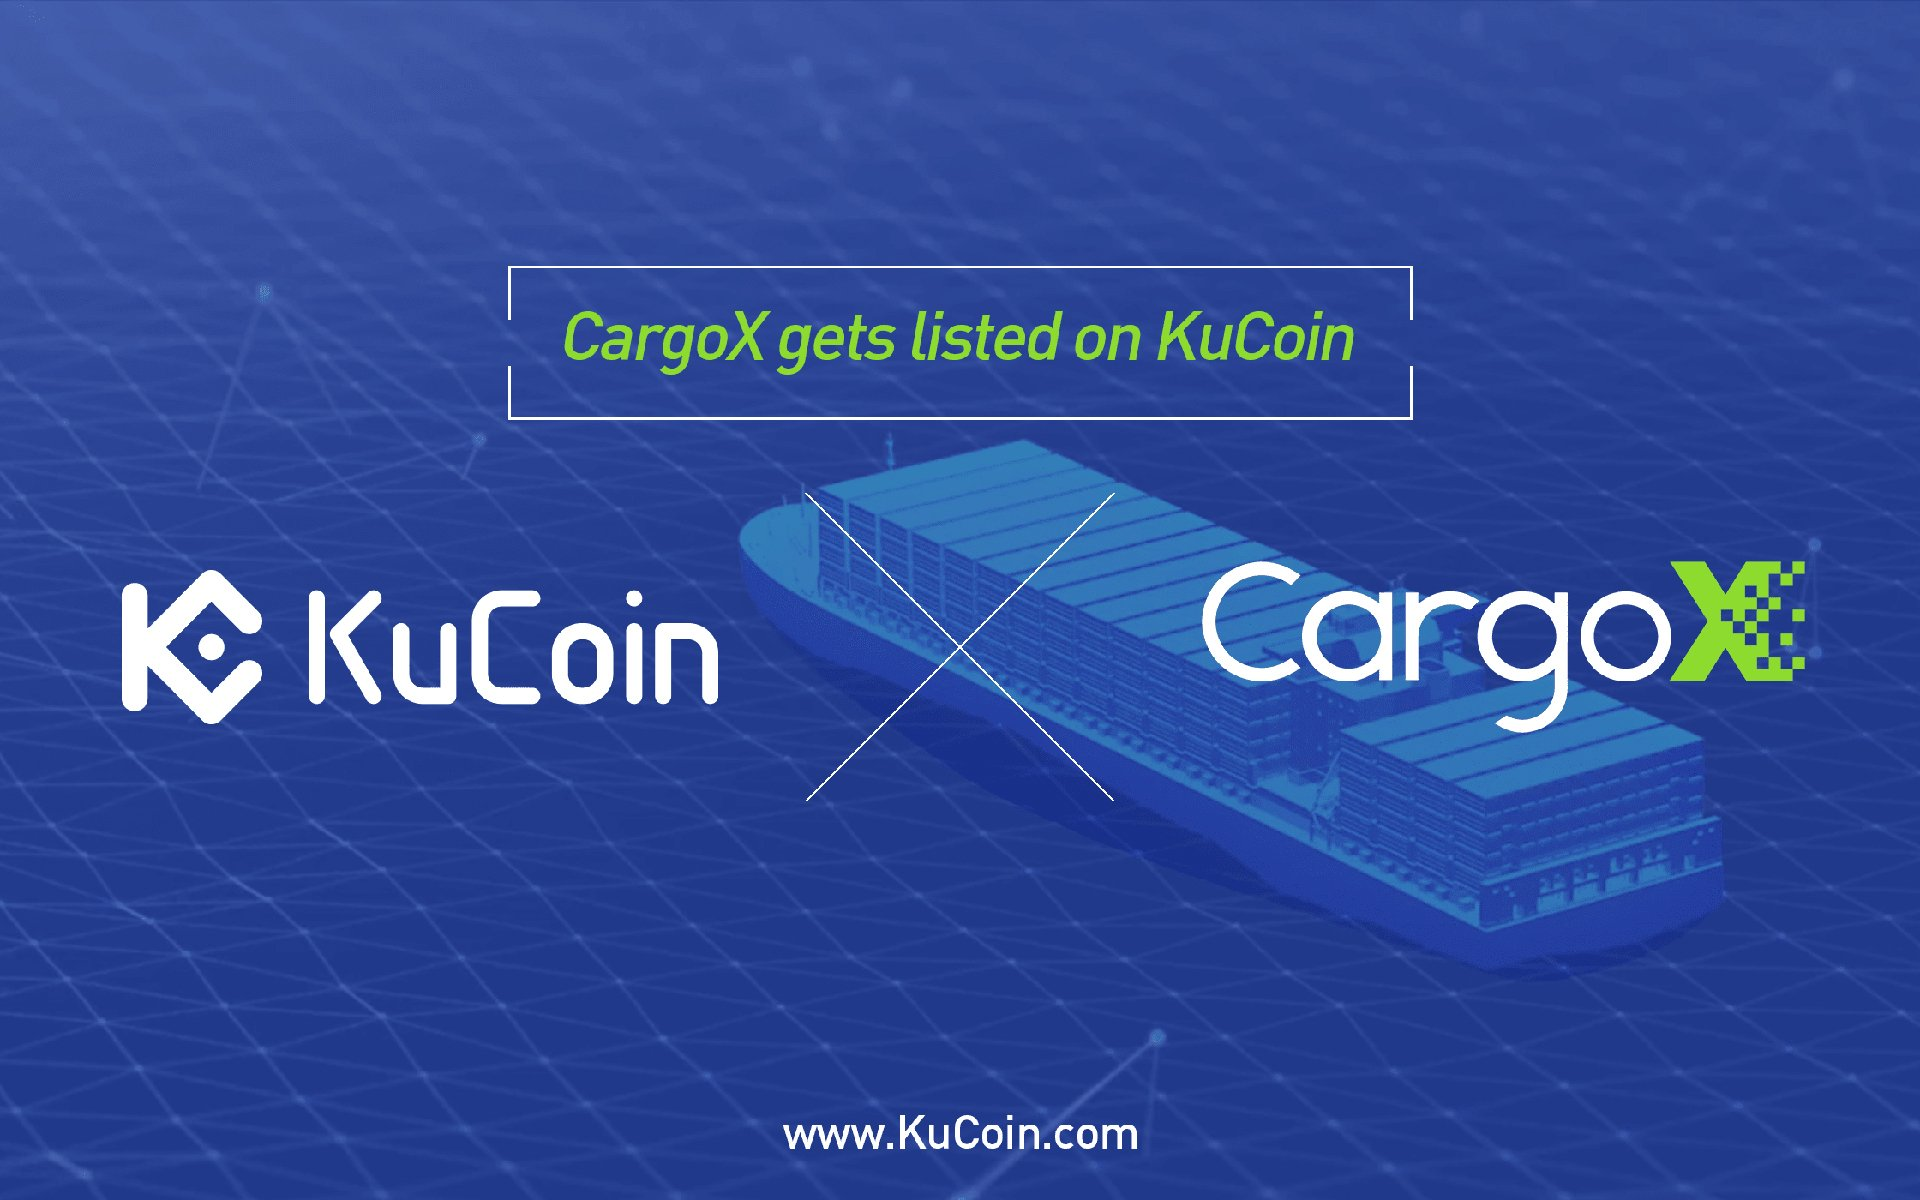 CargoX Gets Listed On KuCoin